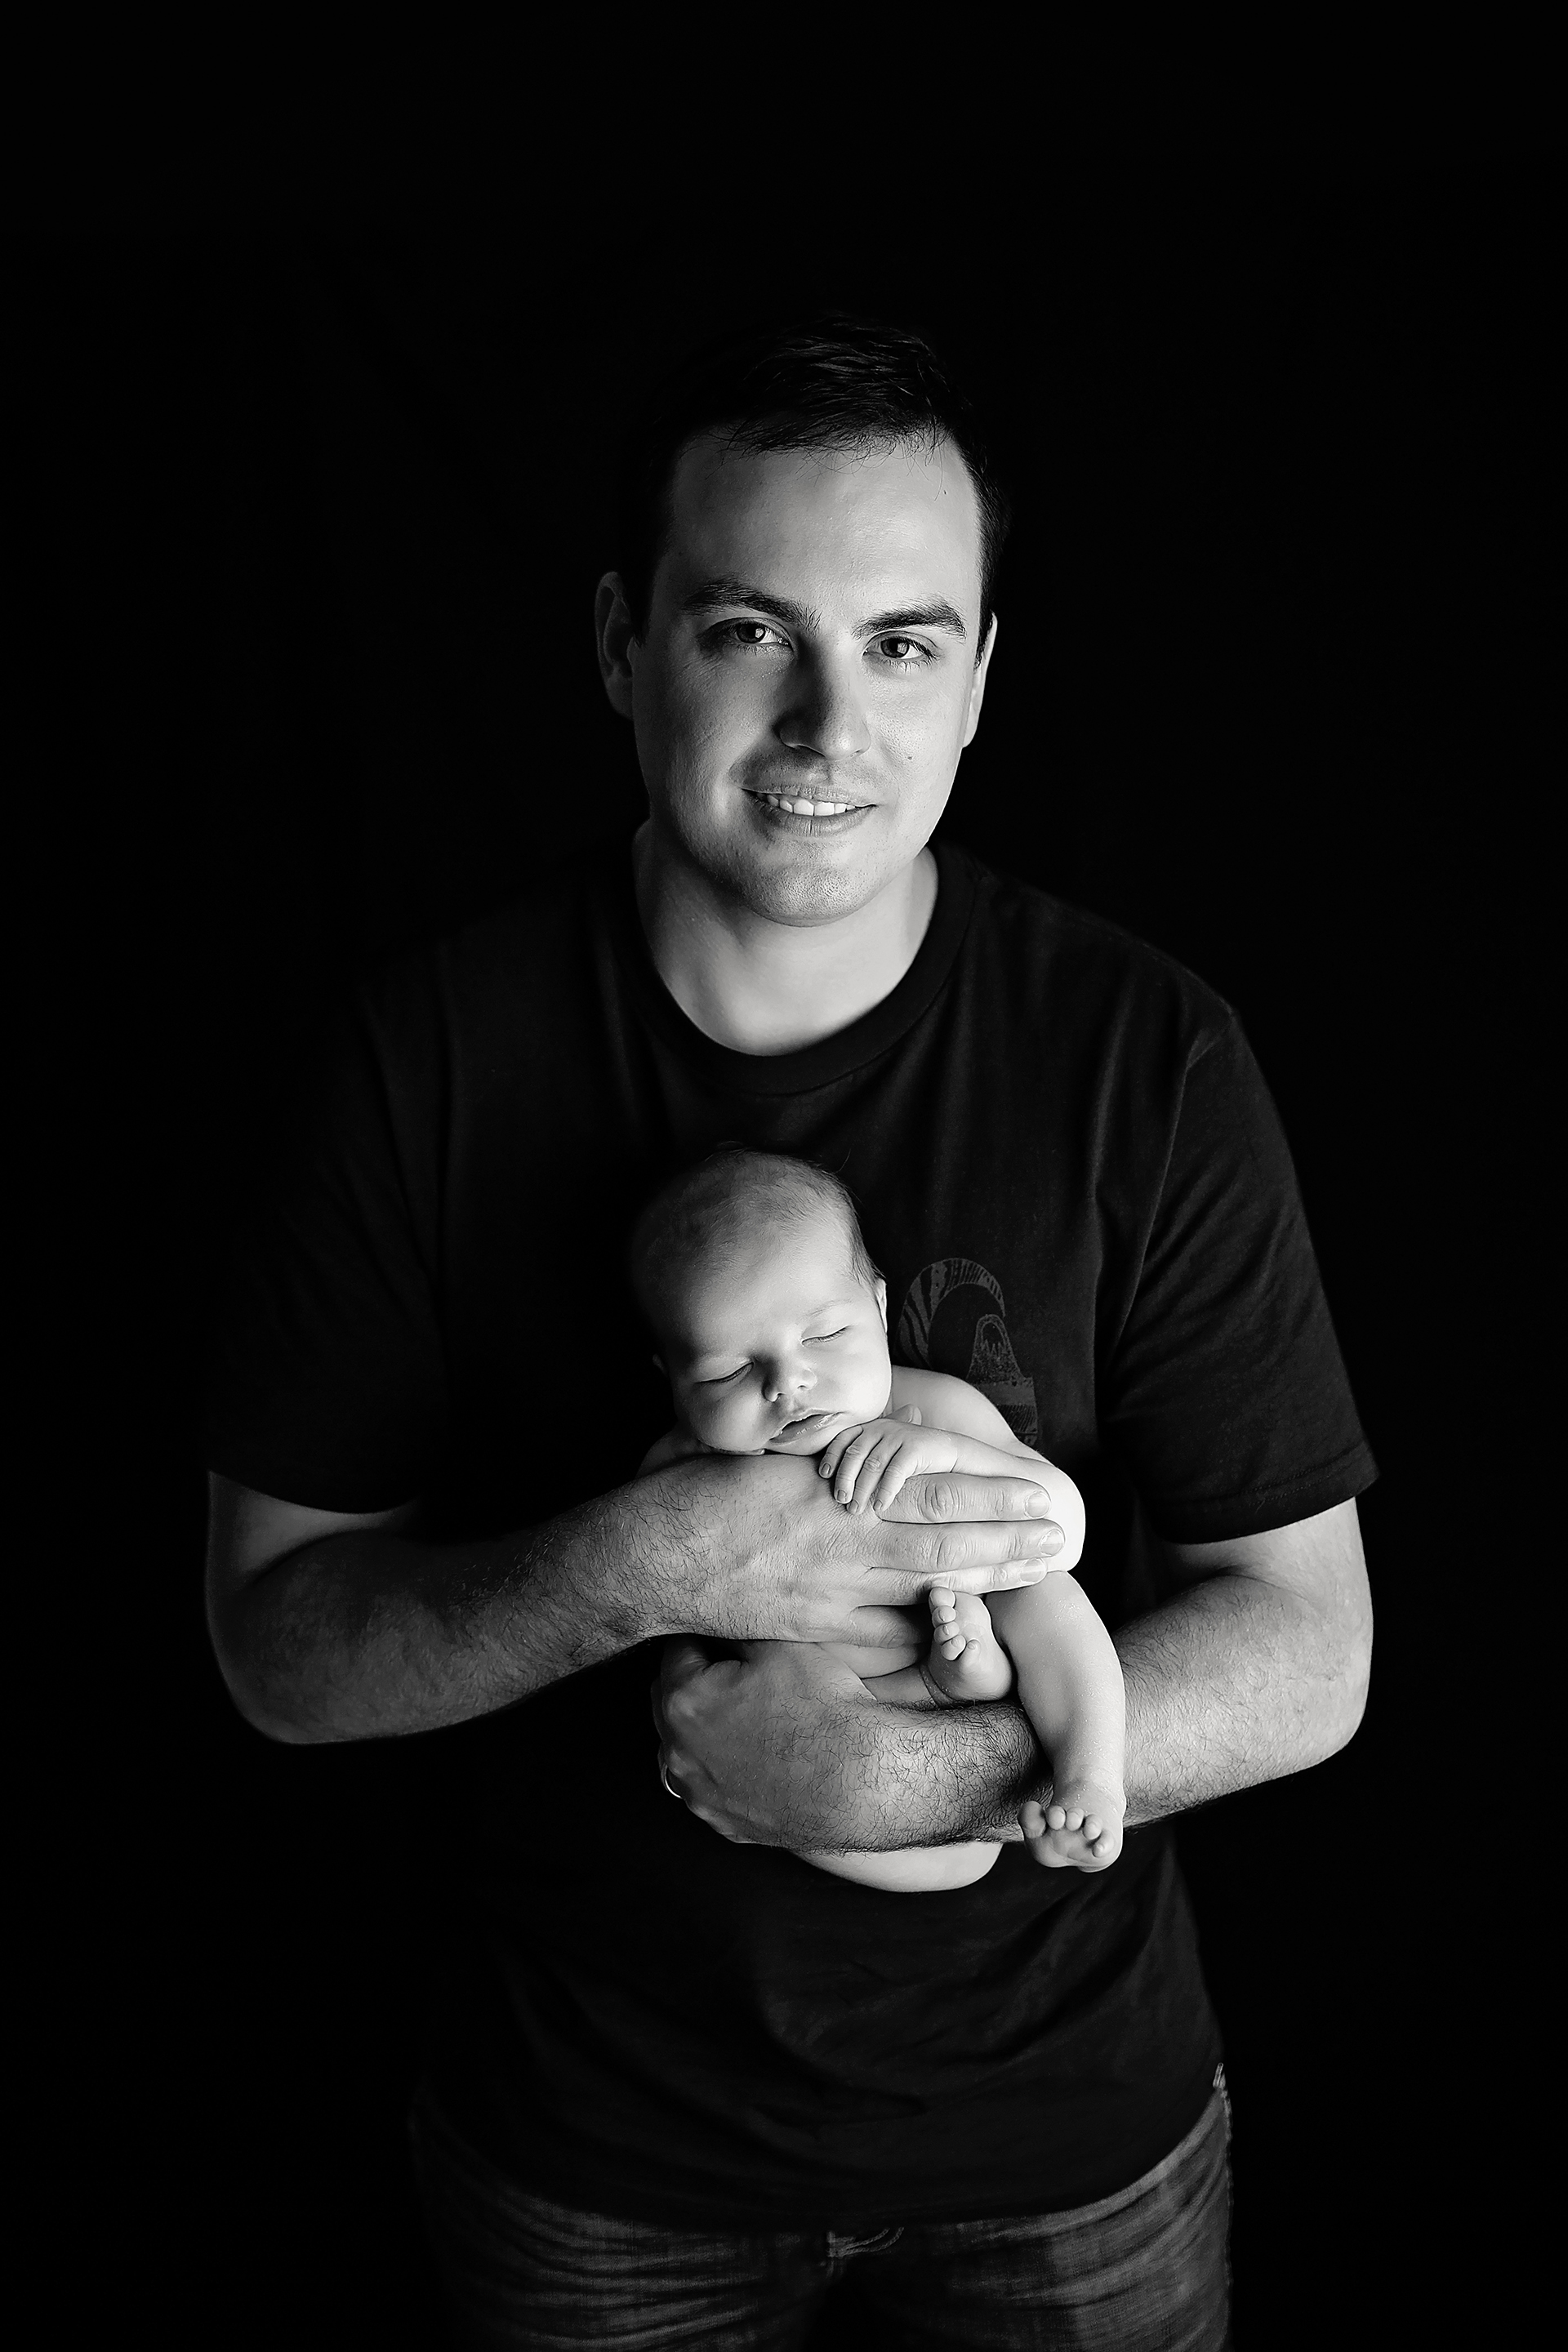 HunterNewbornPhotos-10Black&White.jpg